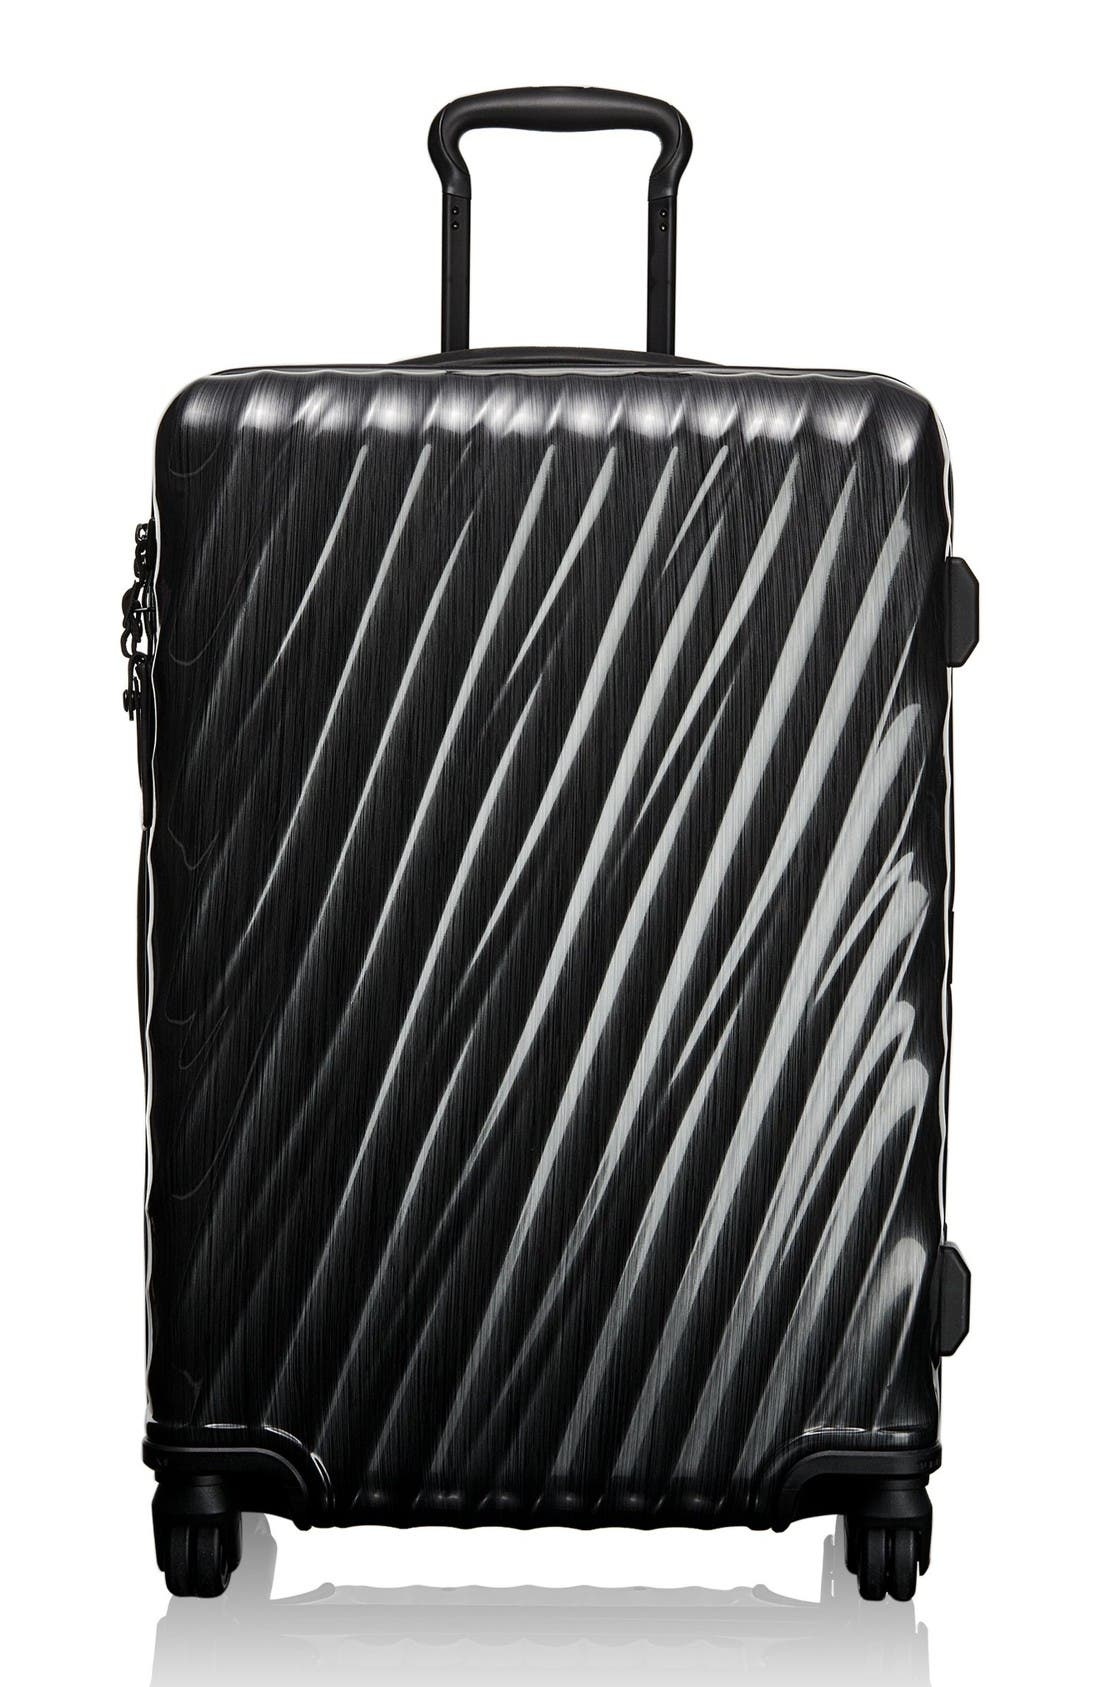 TUMI 19 Degree 26 Inch Short Trip Wheeled